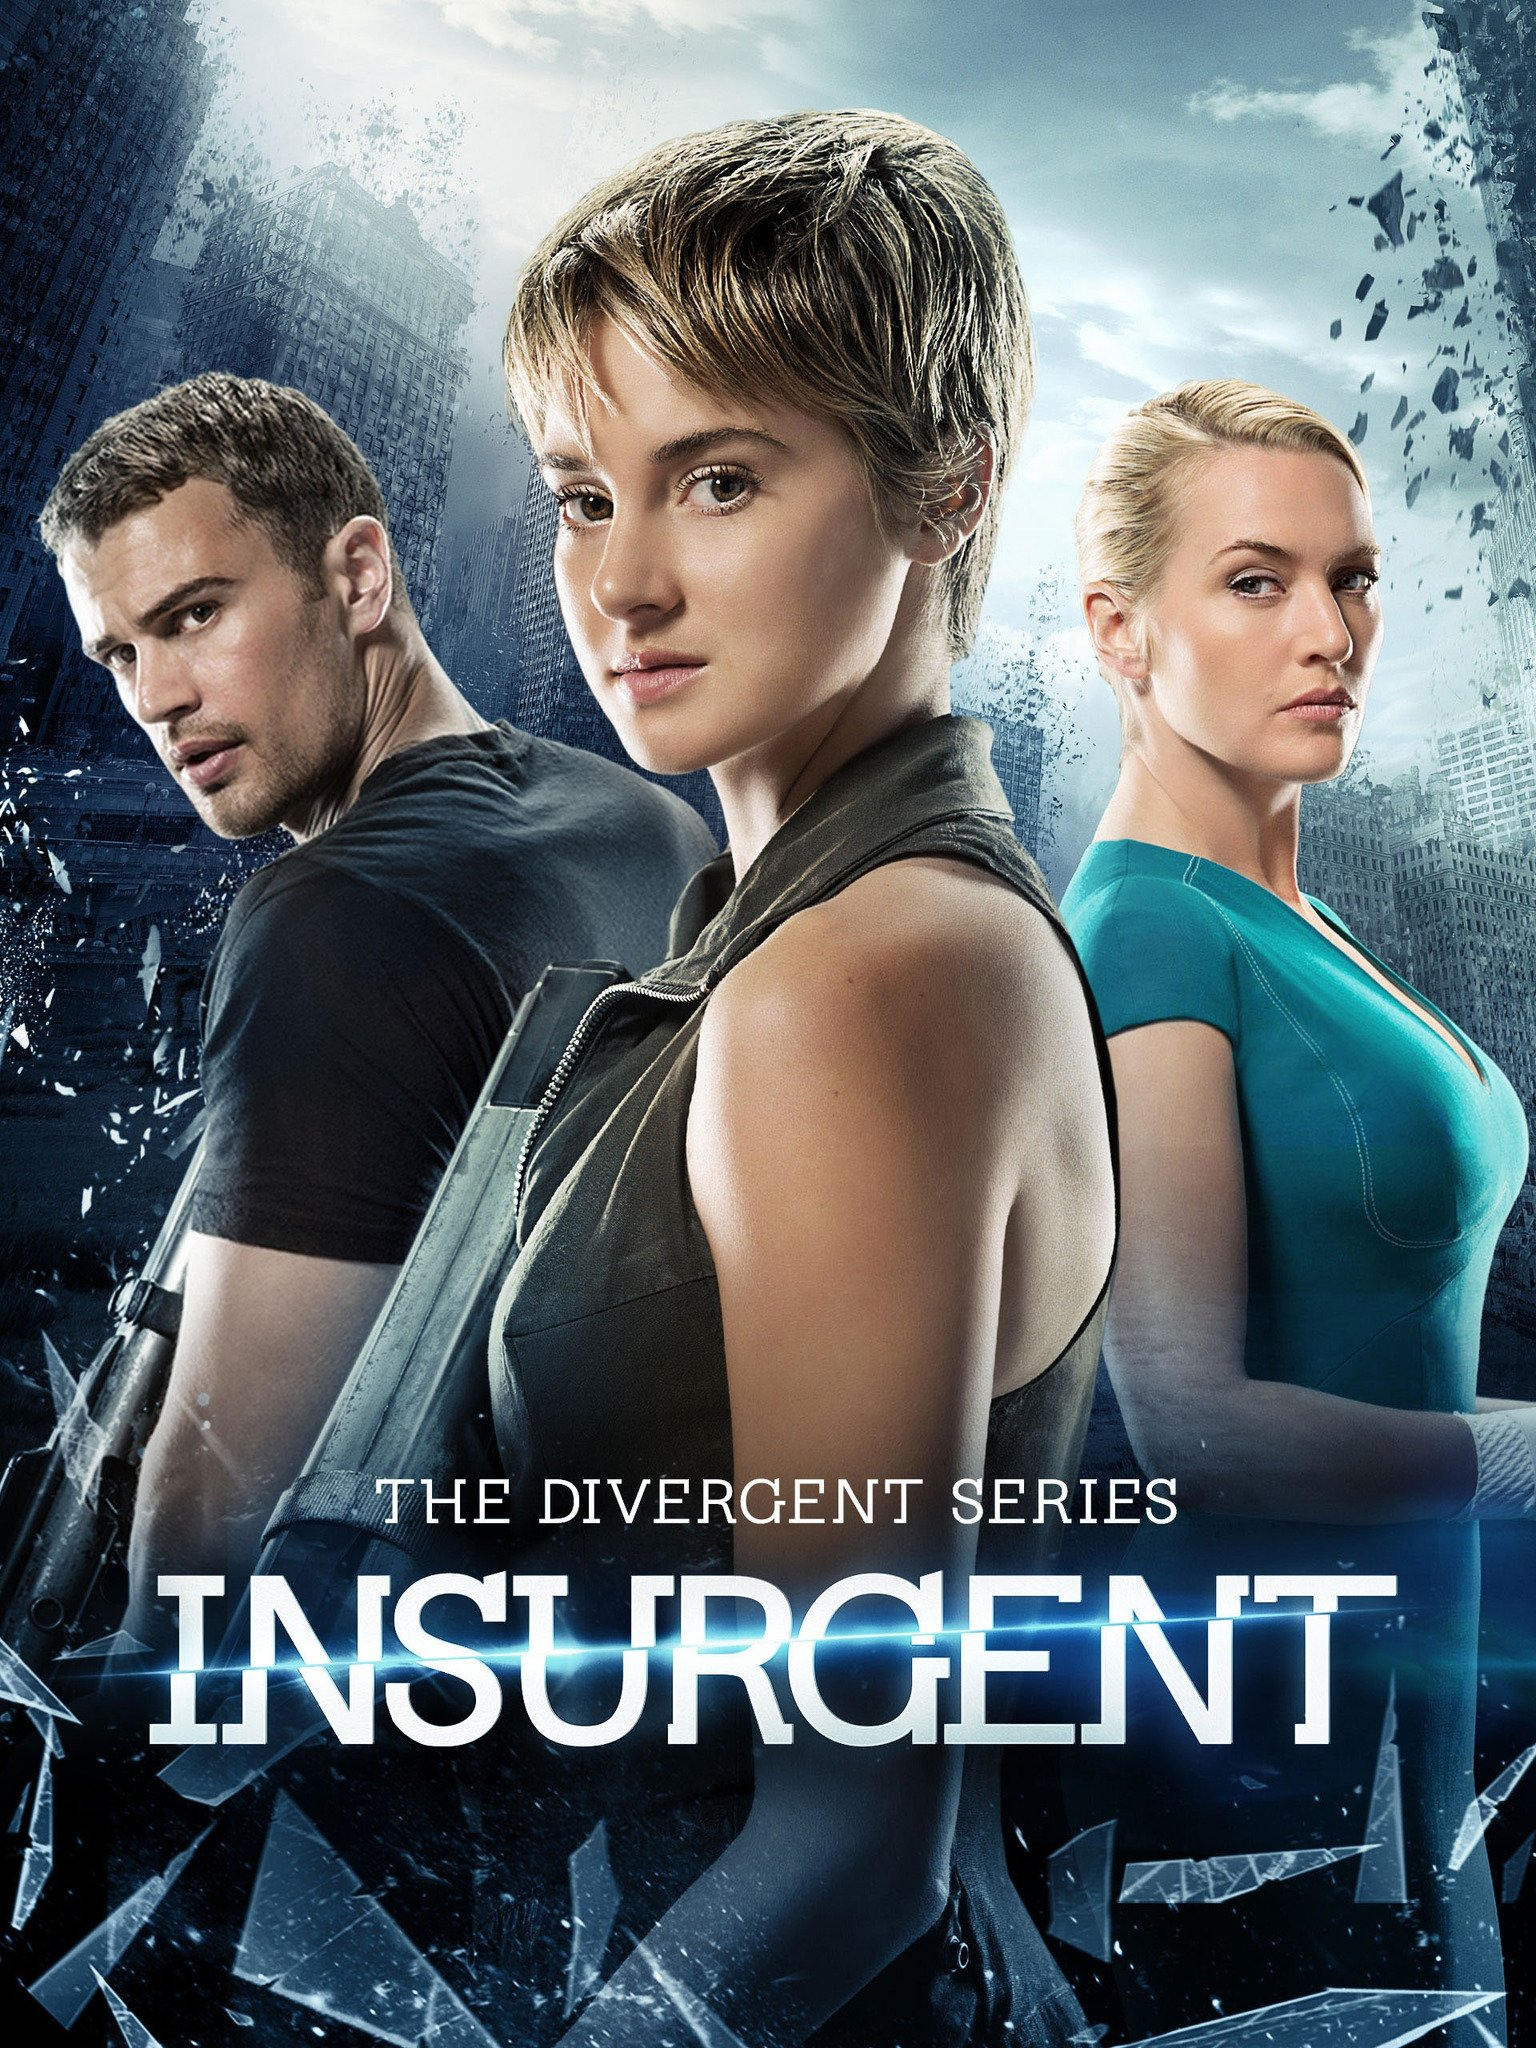 The Divergent Series: Insurgent (2015) - Rotten Tomatoes